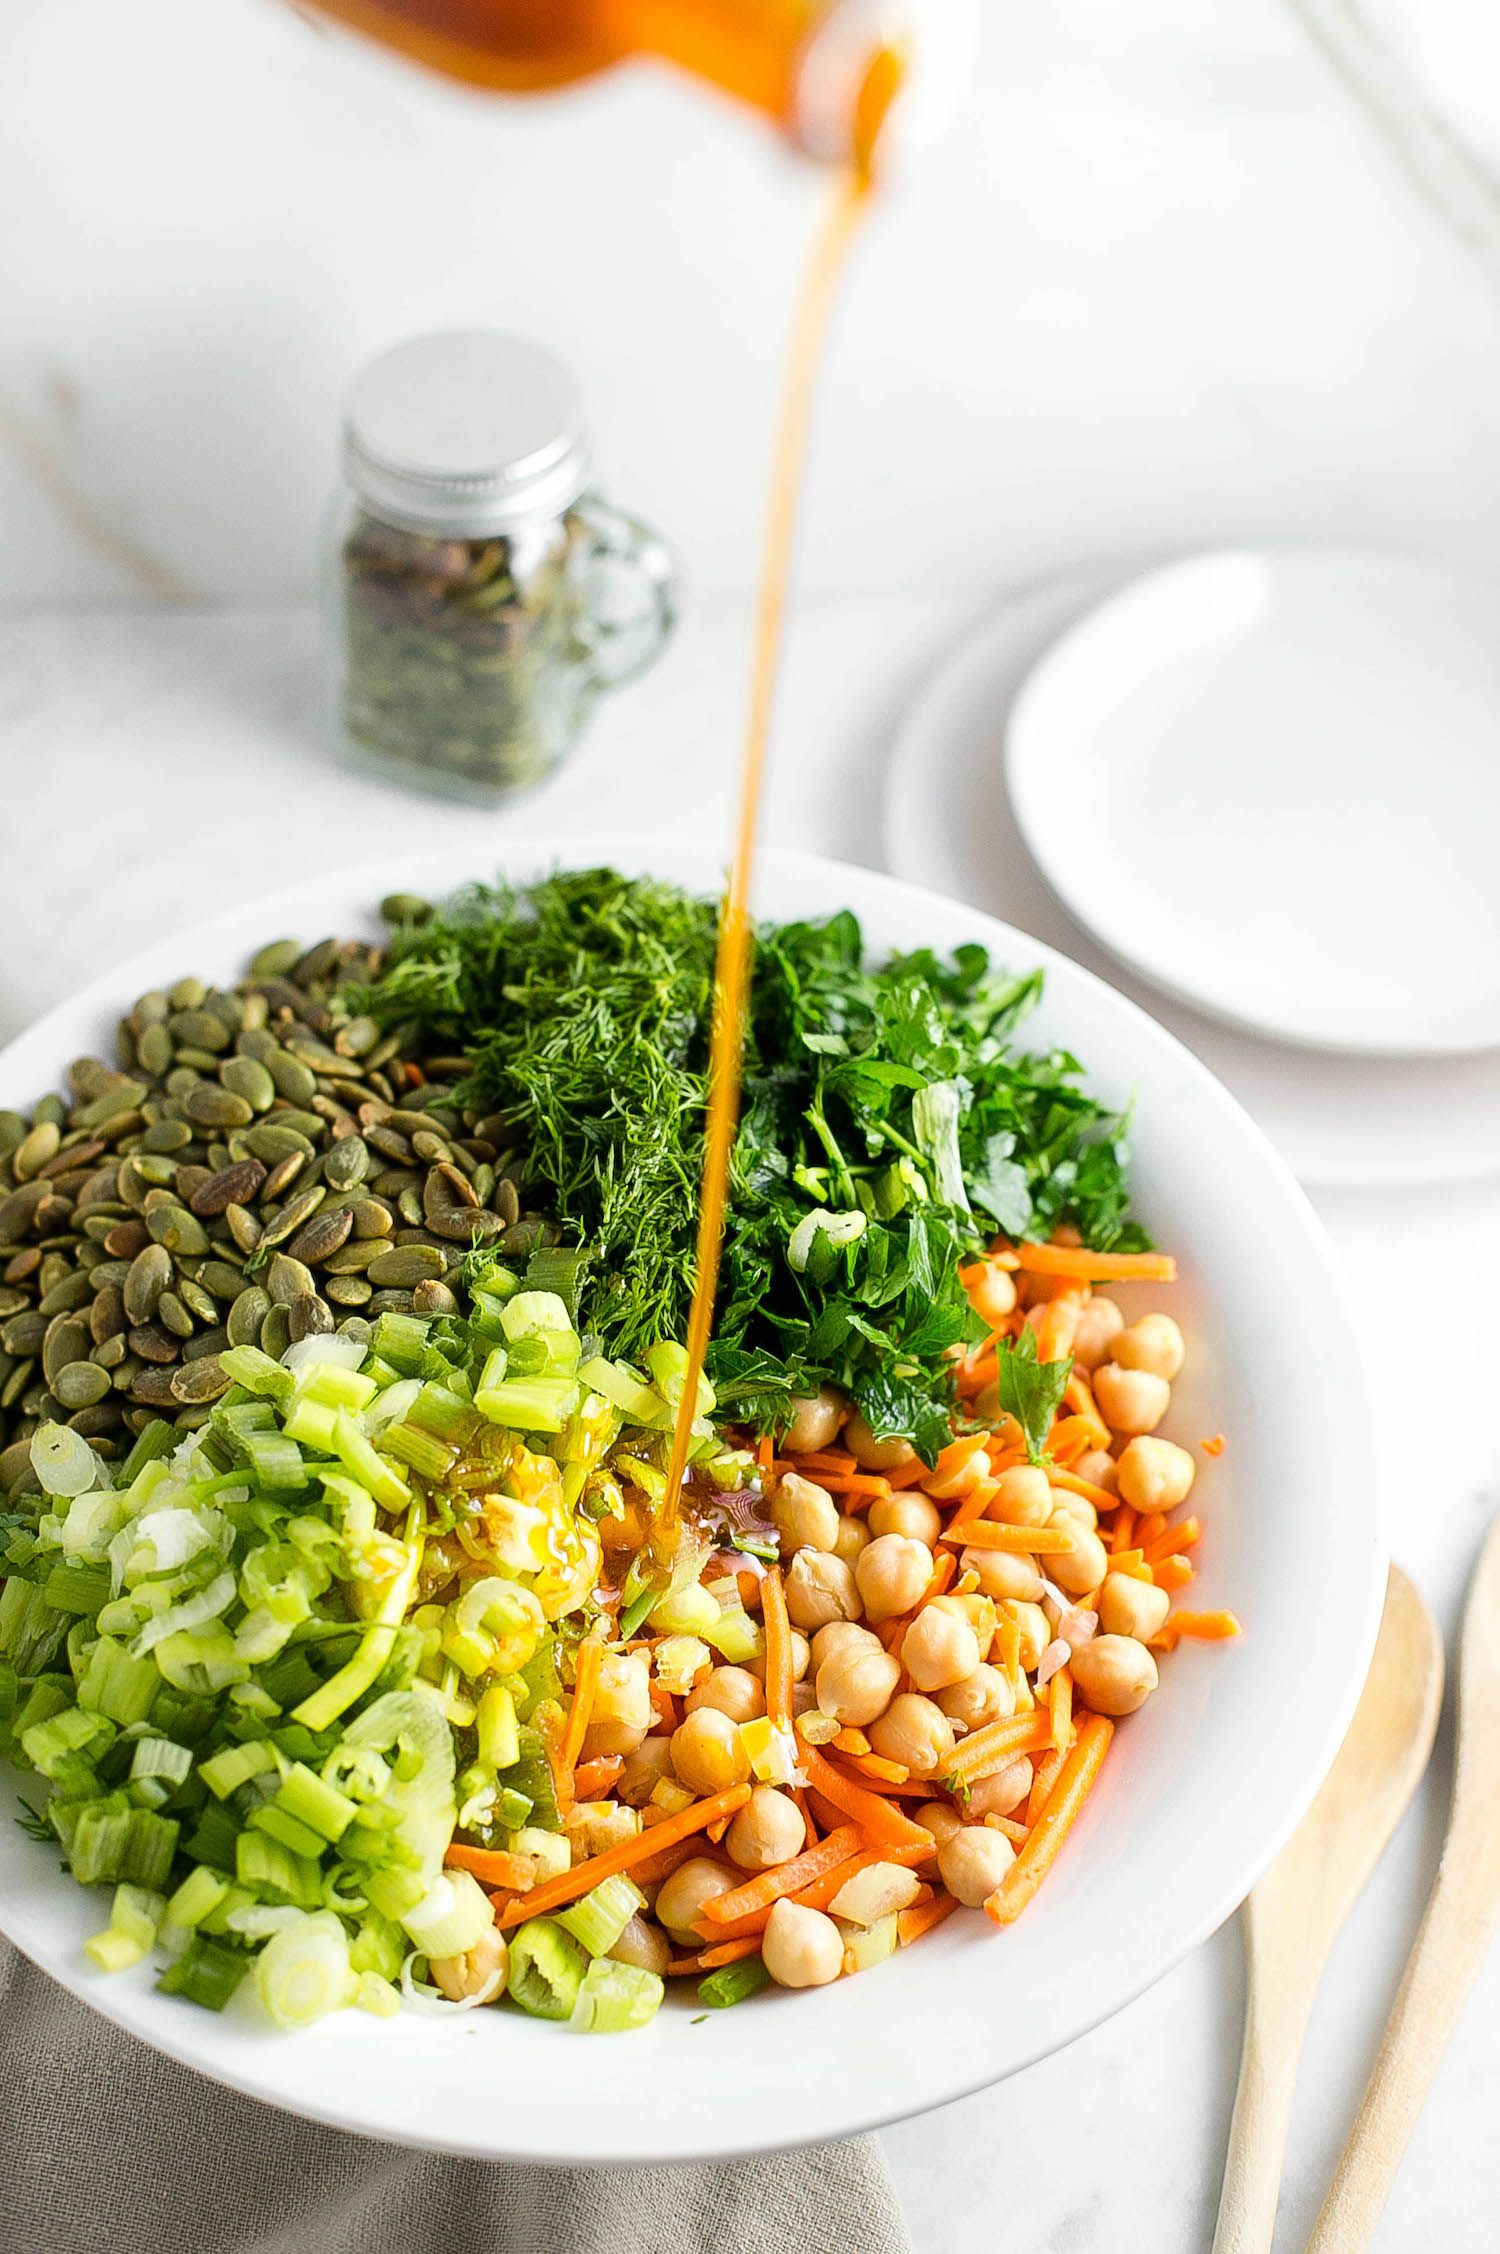 Chickpea Carrot Herb Salad: wholesome, flavorful salad with chickpeas, carrots, scallions, fresh herbs, toasted pumpkin seeds, and a tangy olive oil dressing. | TrufflesandTrends.com